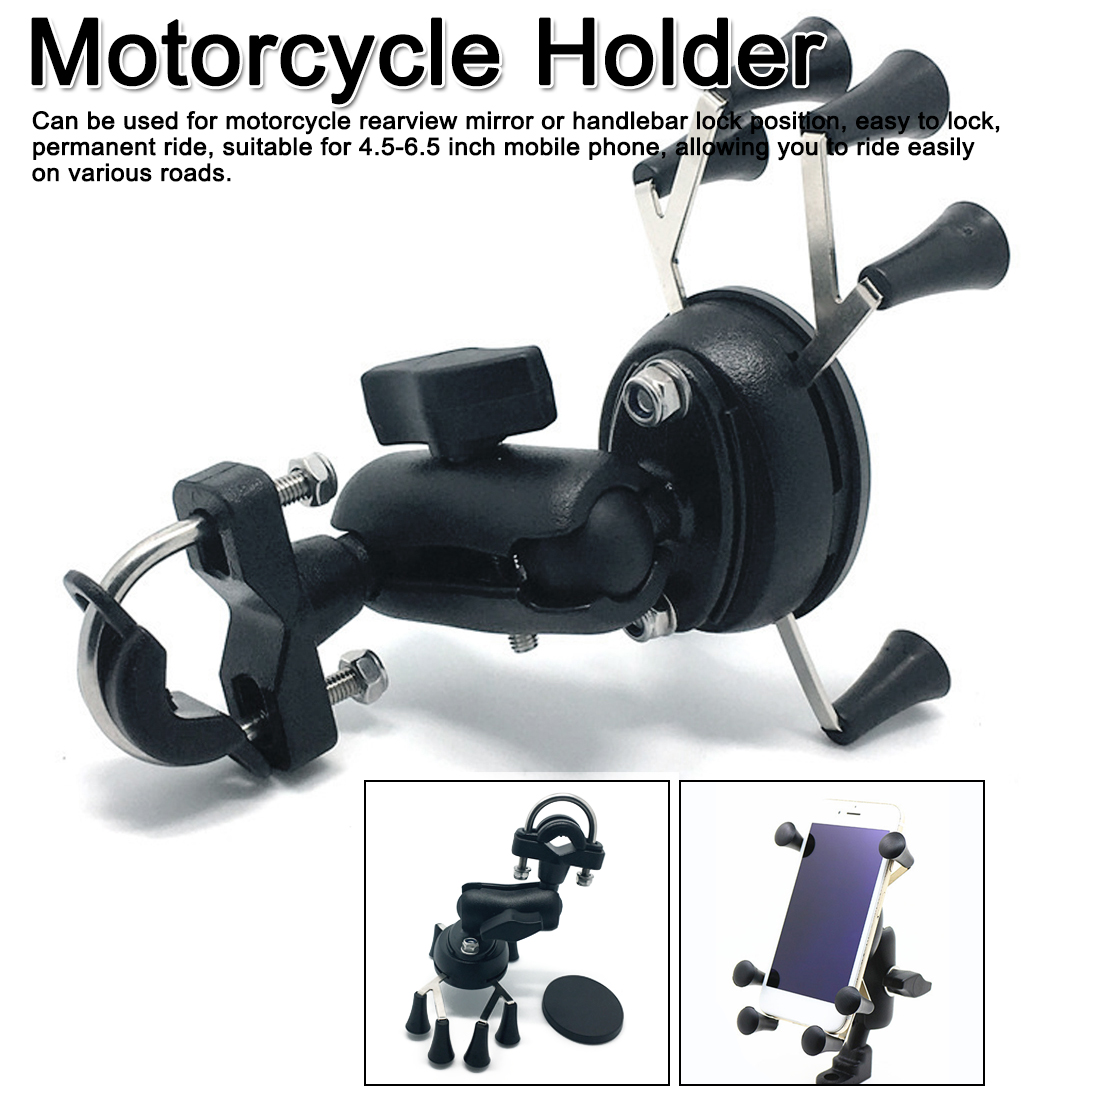 Motorcycle Handlebar Rear Mirror Mount Rail X-Grip For Gopro CellPhone Smartphone Holder For IPhone 7 7+ 6s Ram Mounts